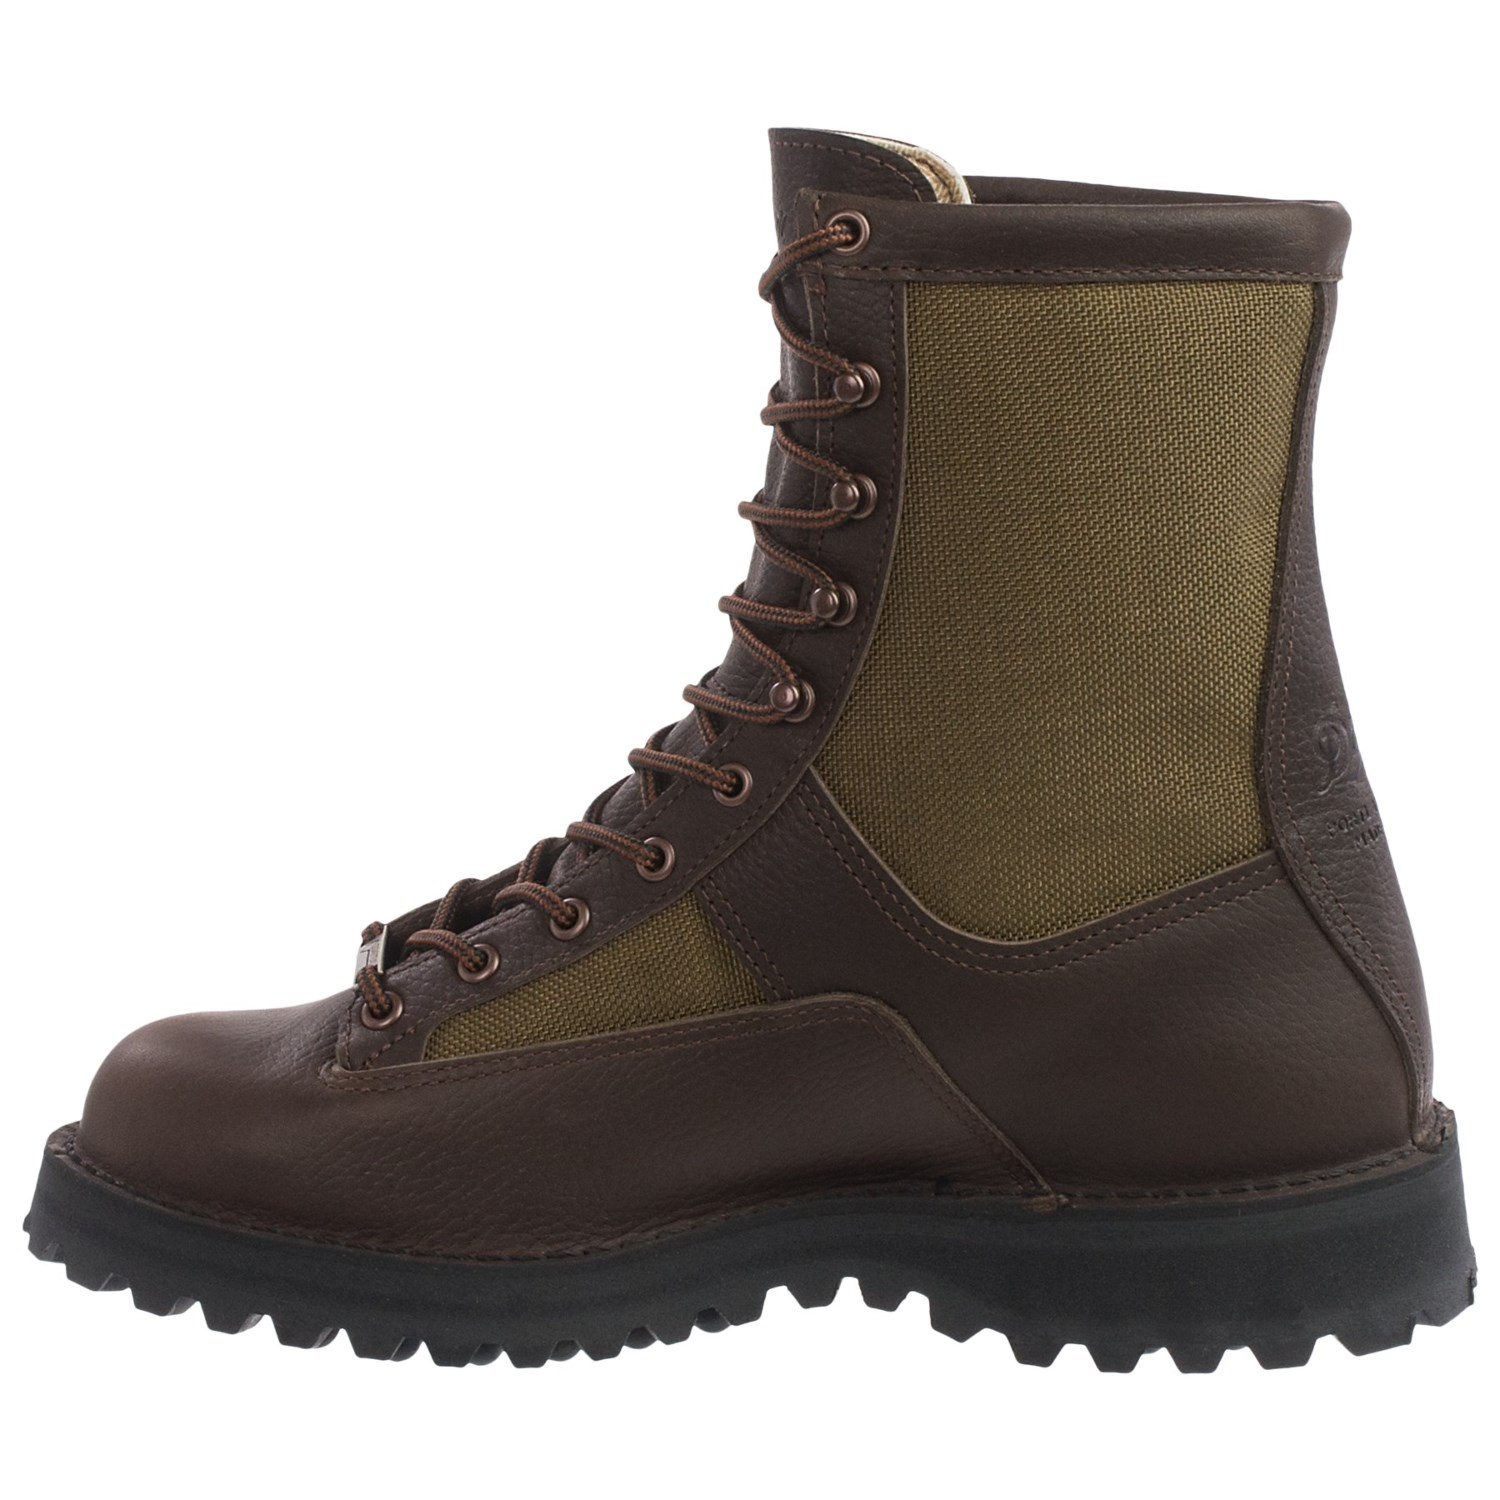 Danner Gore Tex Boots - Yu Boots